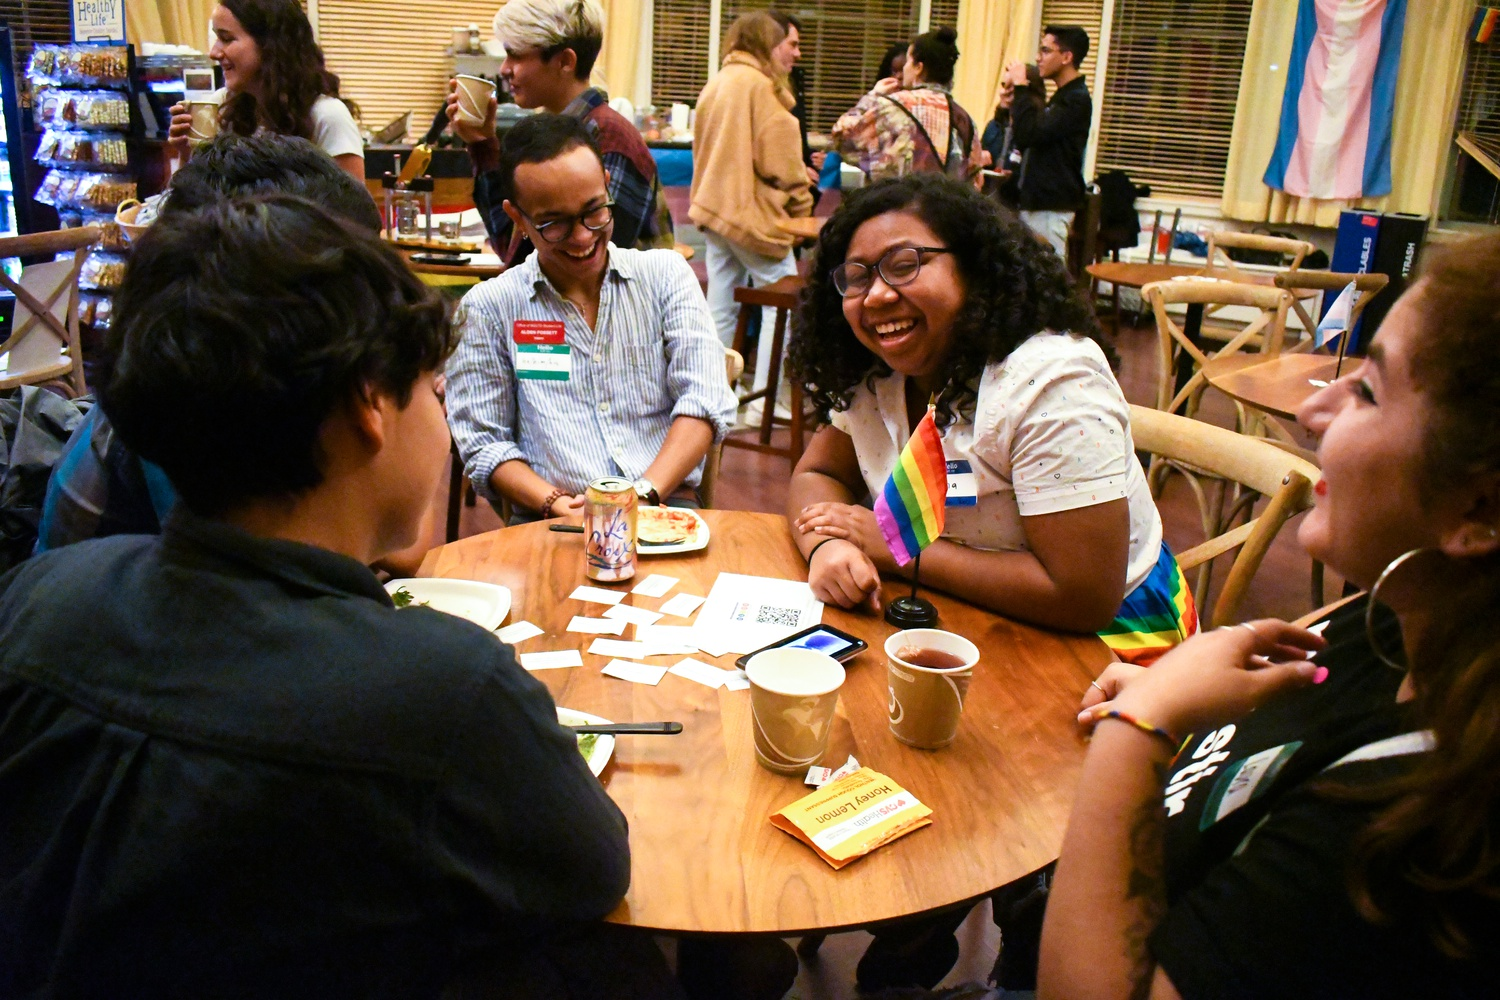 BGLTQ student and allies celebrated National Coming Out Day at OUTspoken, an open mic and social event Friday.